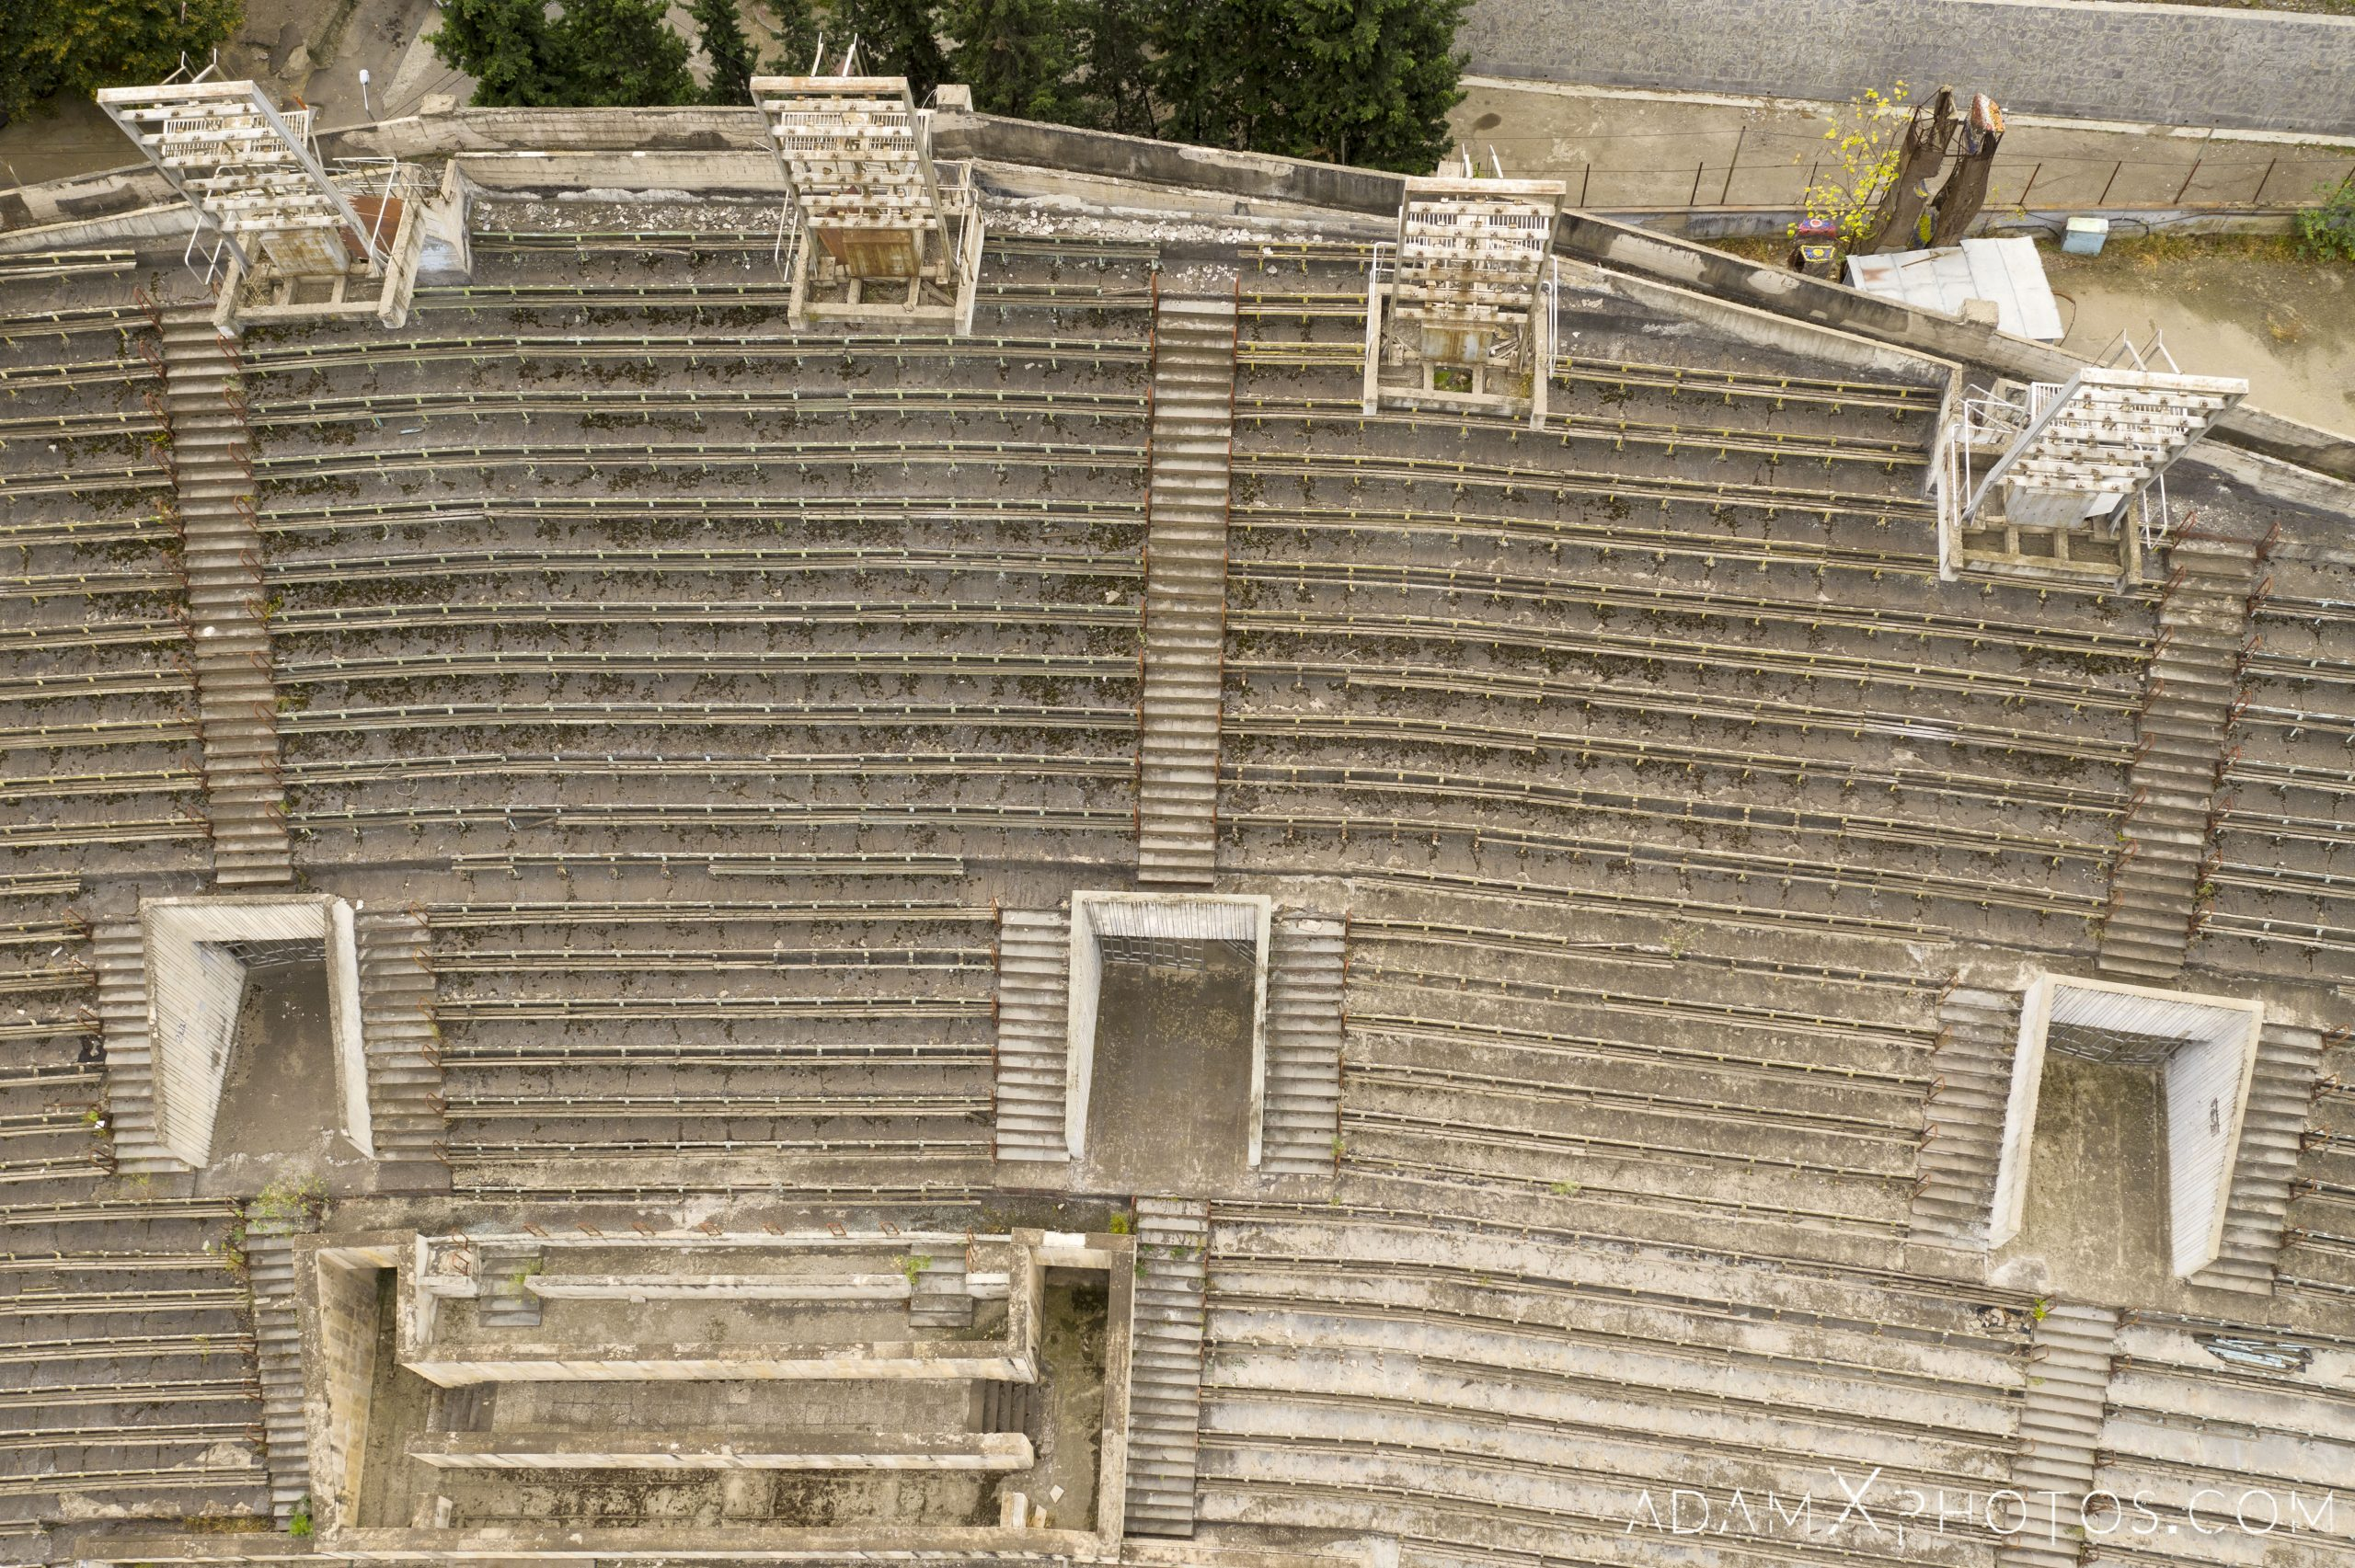 Stands bleachers drone from above aerial Laguna Vere swimming pool Tbilisi Georgia Soviet era Adam X AdamXPhotos Urbex Urban Exploration 2018 Abandoned Access History decay ruins lost forgotten derelict location creepy haunting eerie security